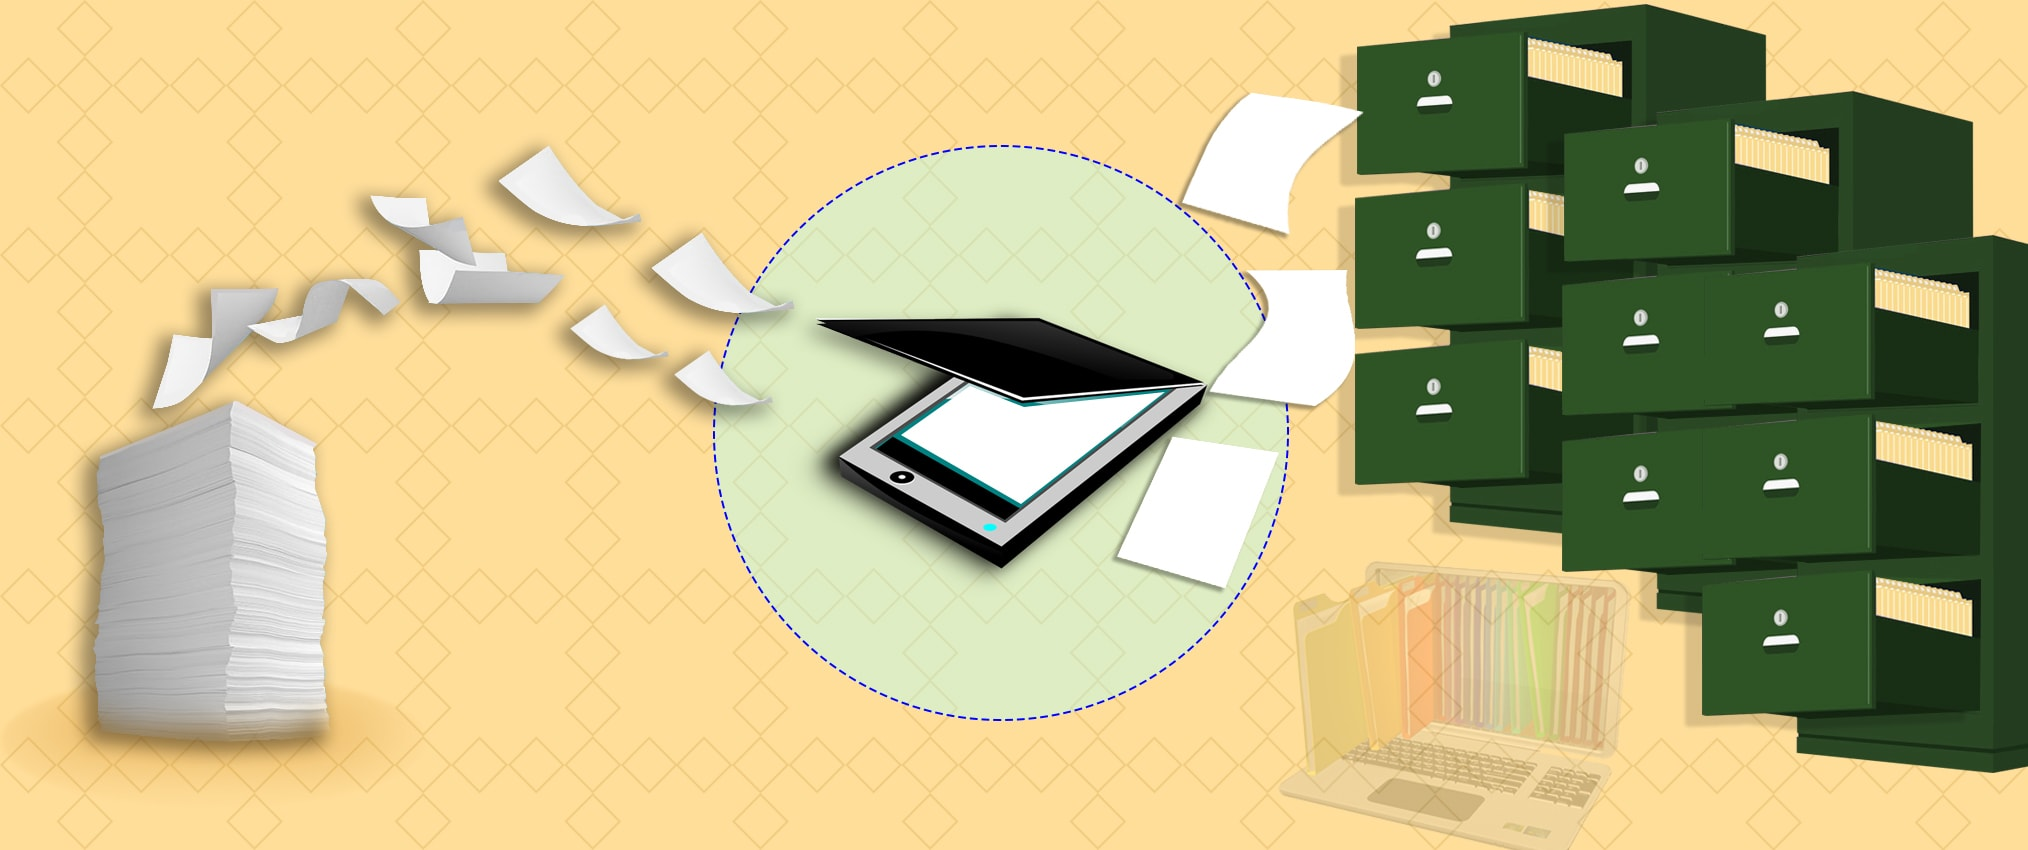 benefits-of-document-scanning-indexing-services-in-industry